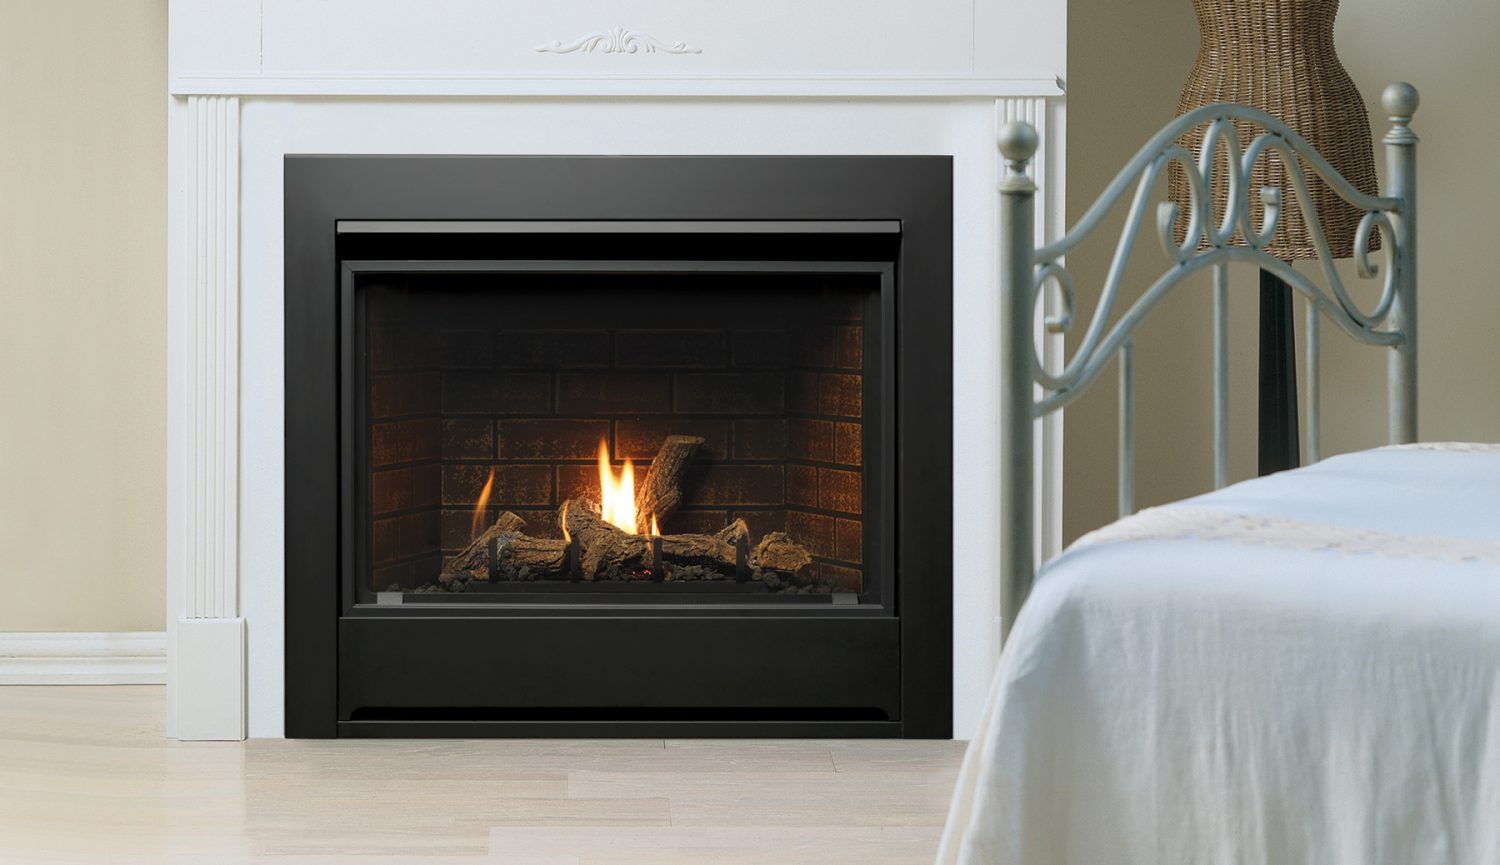 pro fireplaces vfi north product kingsman fireplace products heating shore insert gas